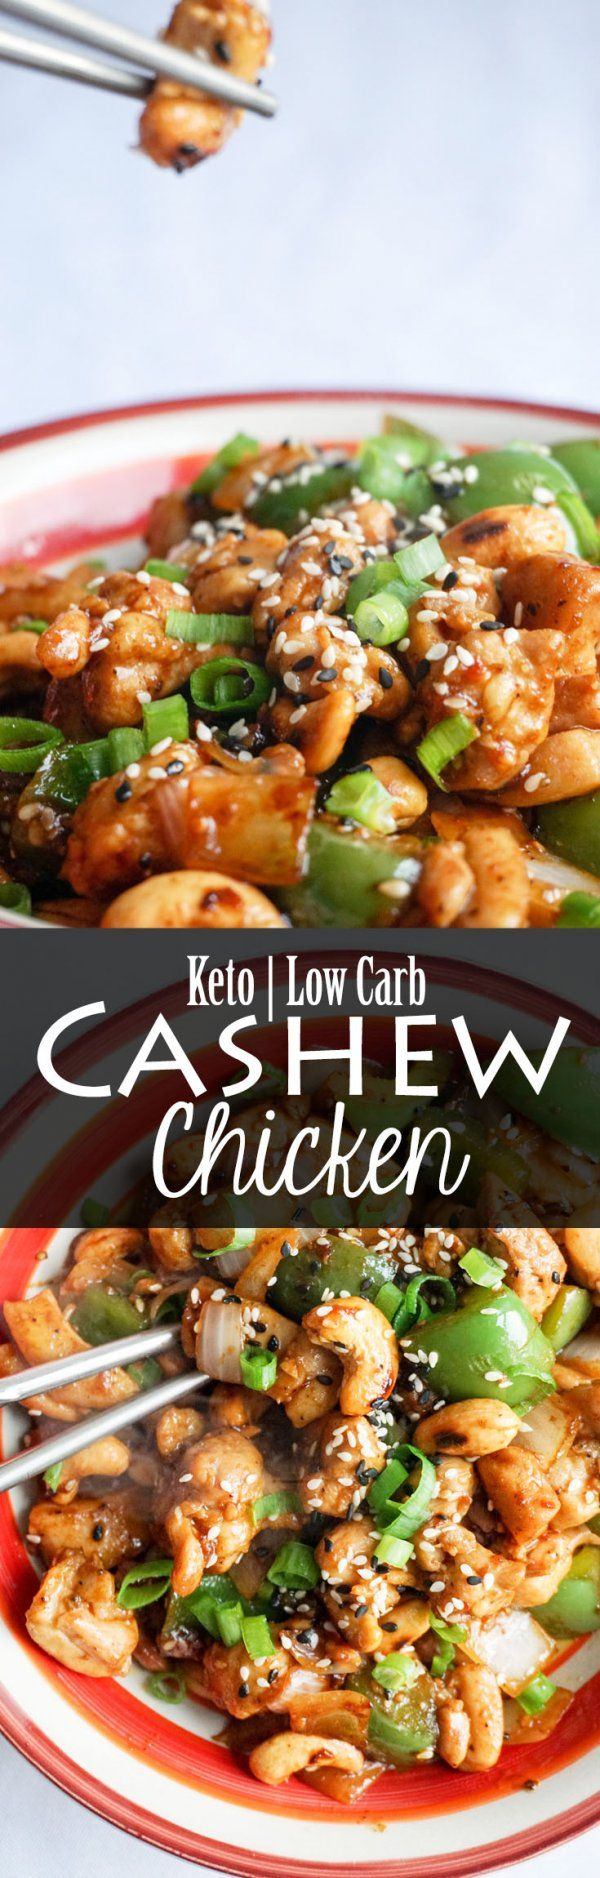 Easy Cashew Chicken ready in under 15 minutes. Keto, Low Carb!